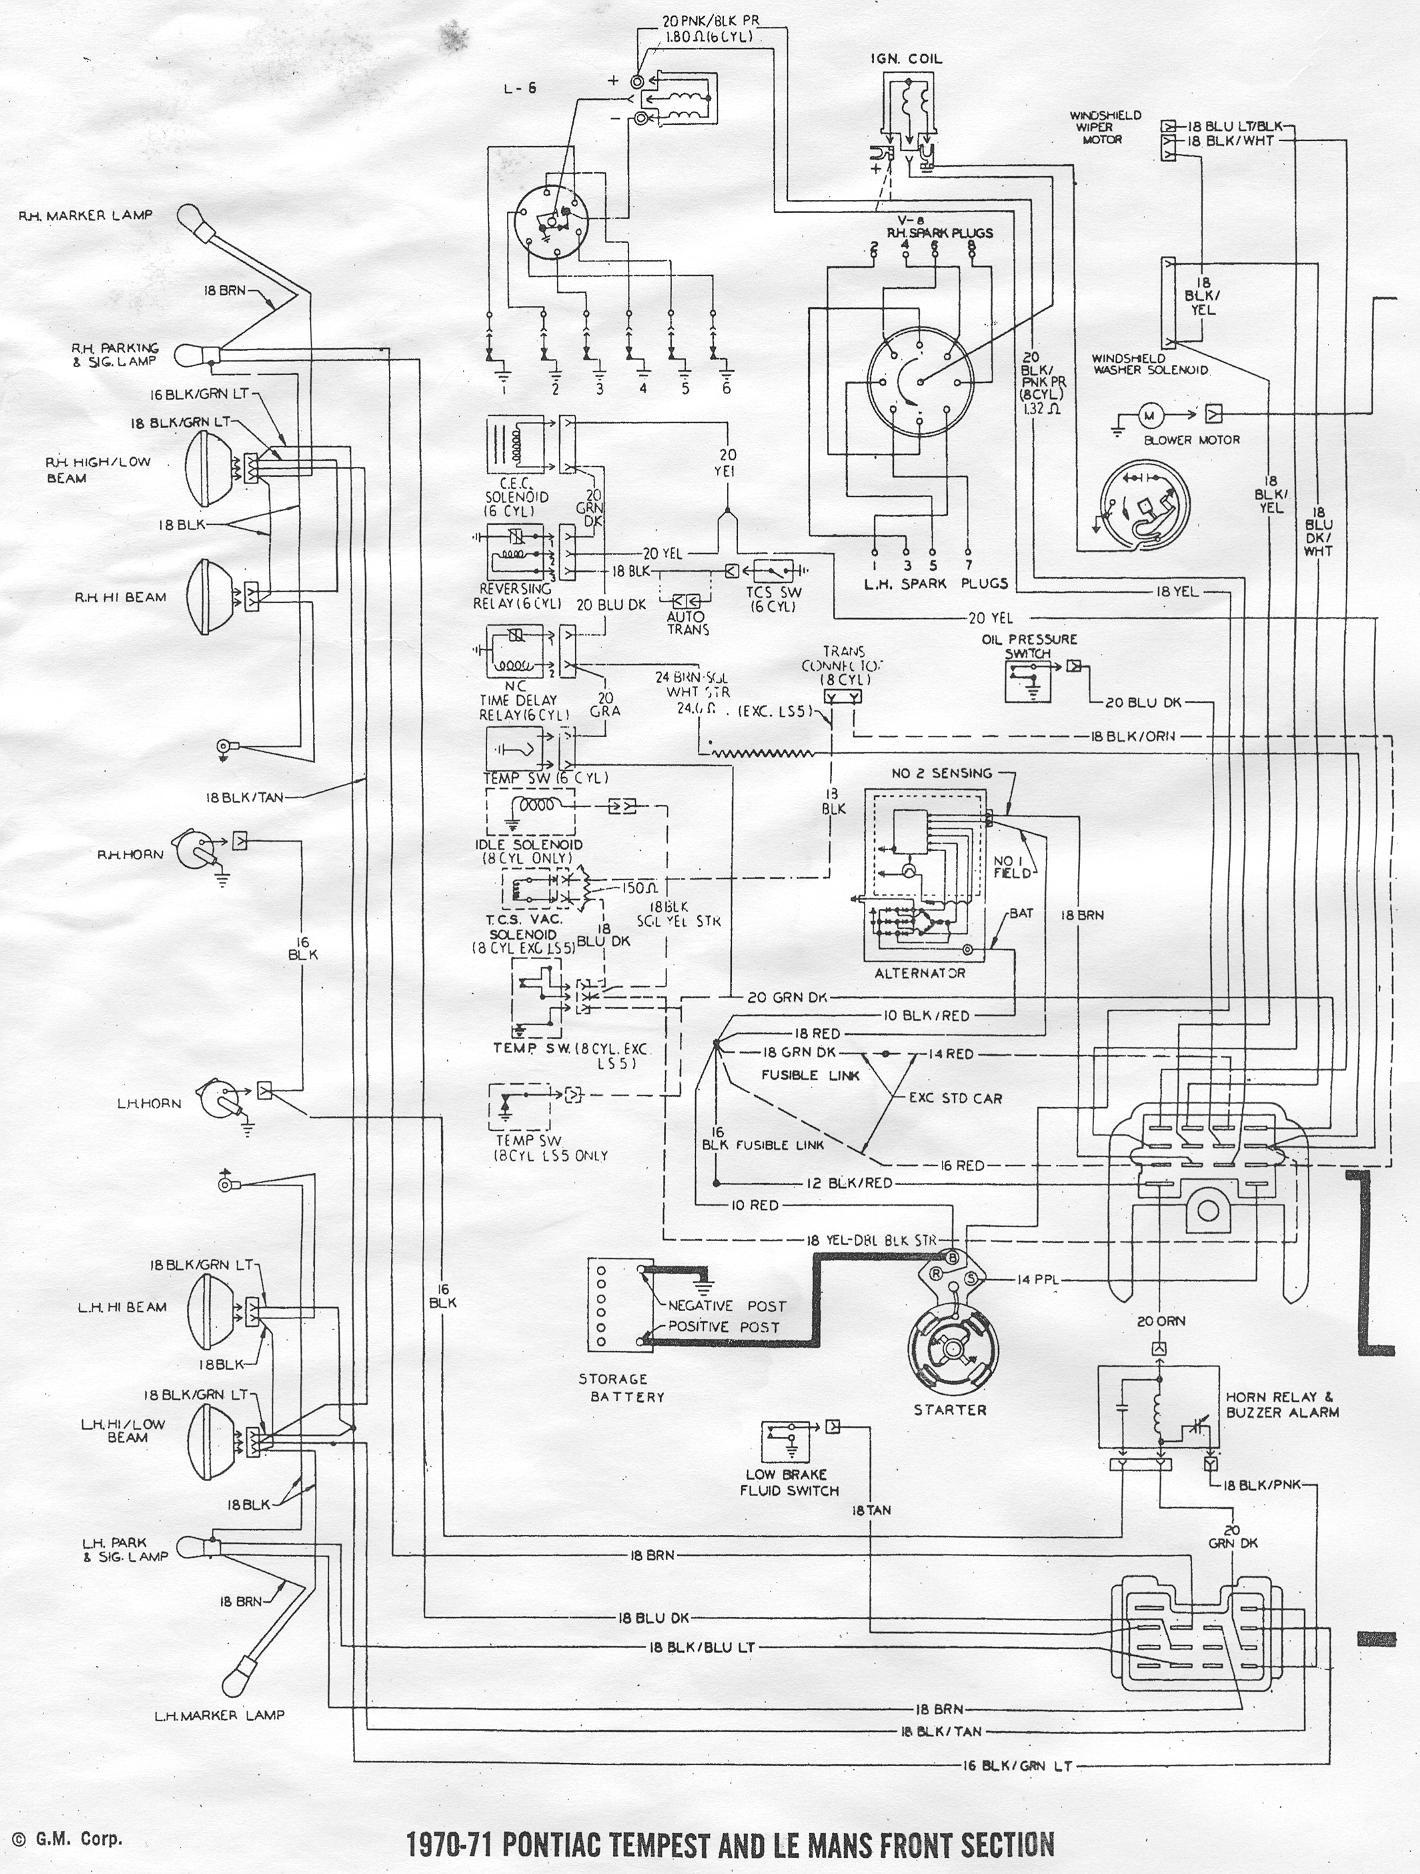 1994 camaro wiring diagram 1994 image wiring diagram wiring diagram for 1994 camaro tachometer wiring discover your on 1994 camaro wiring diagram